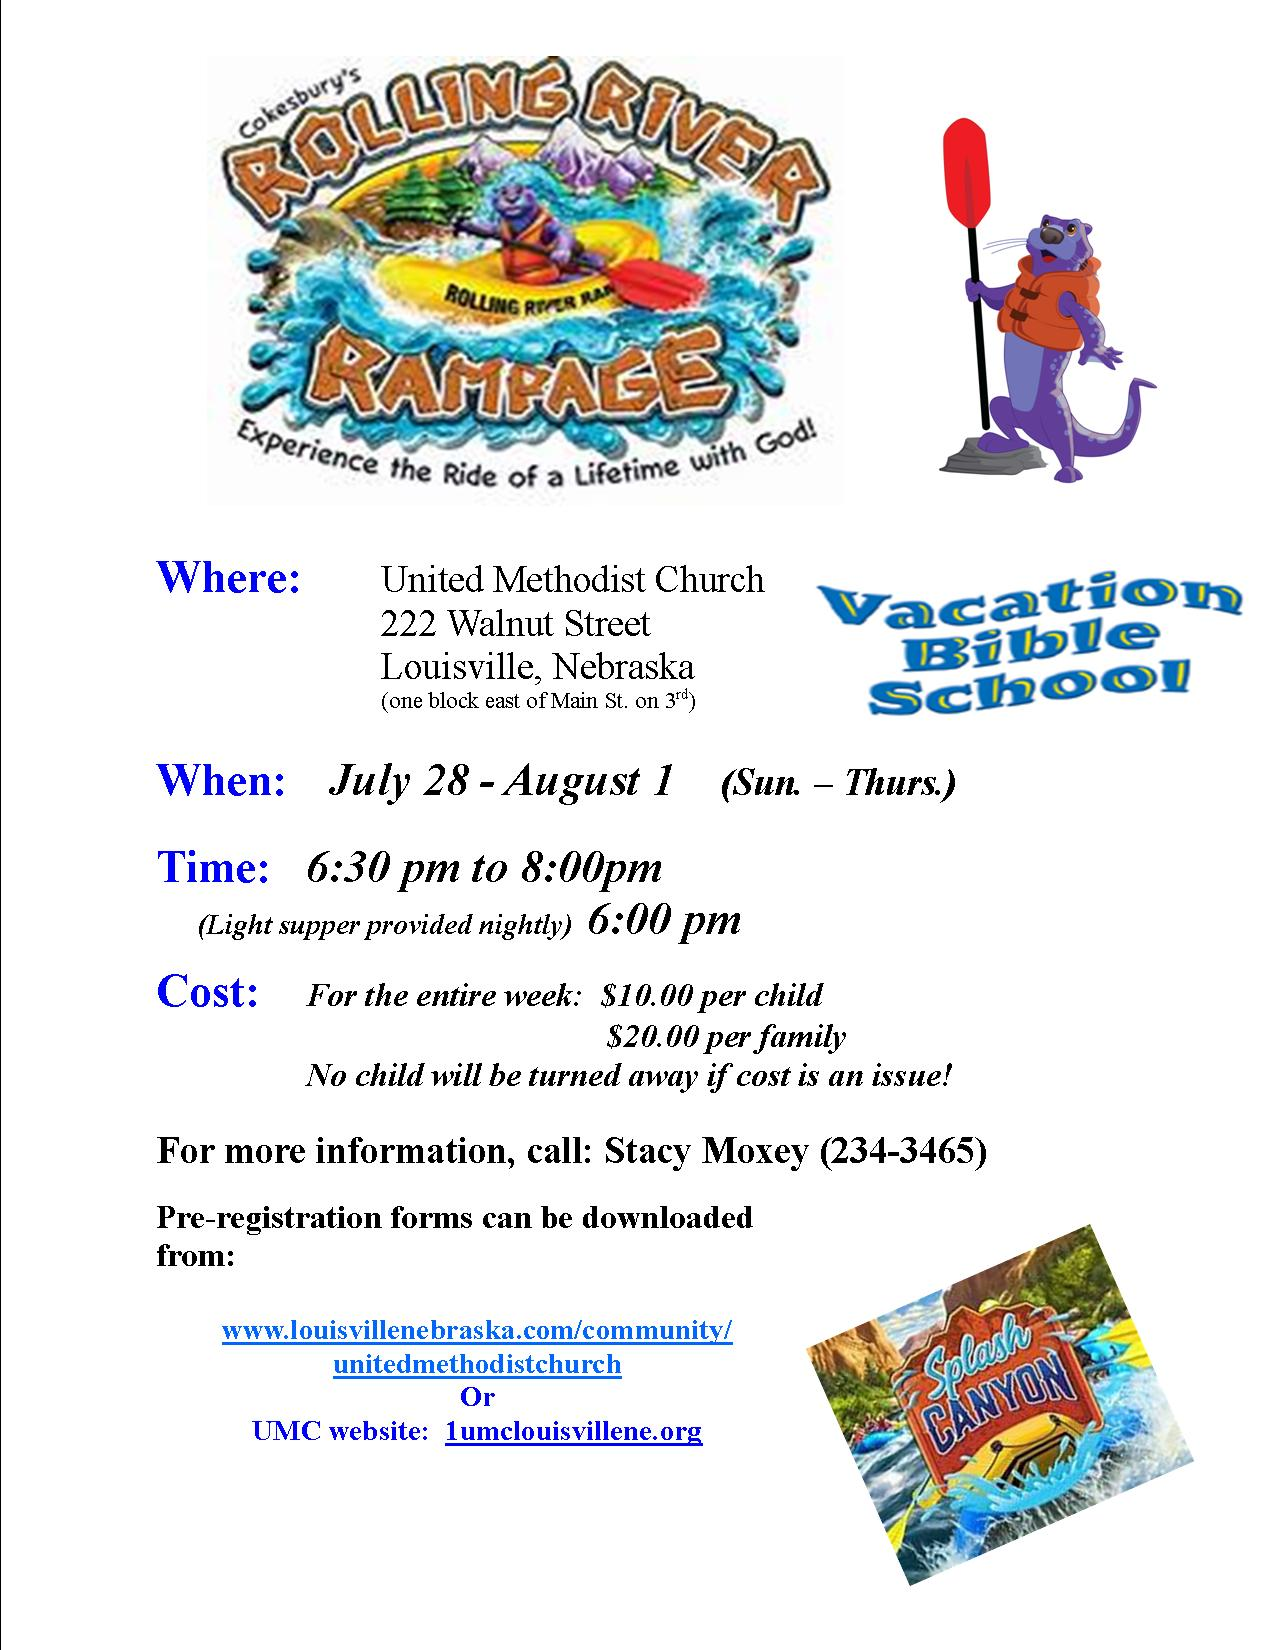 VBS 2019 flyer rolling river rampage